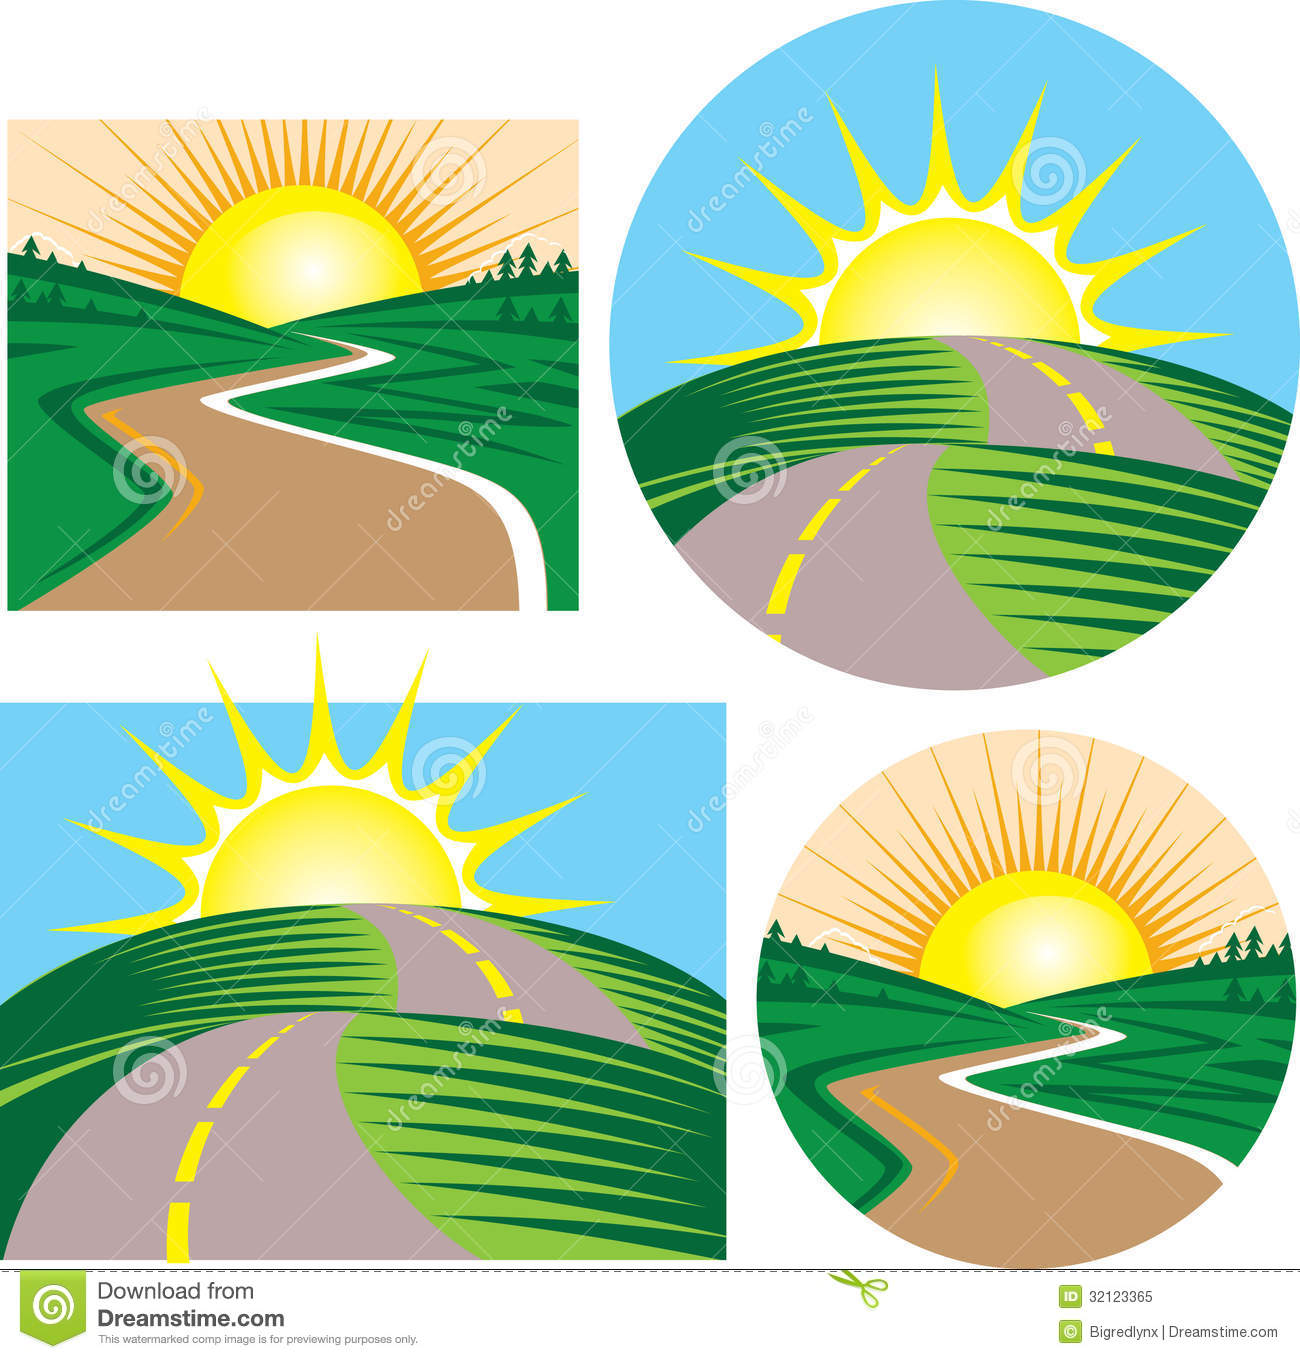 Sunset Road Clipart With No Watermark.